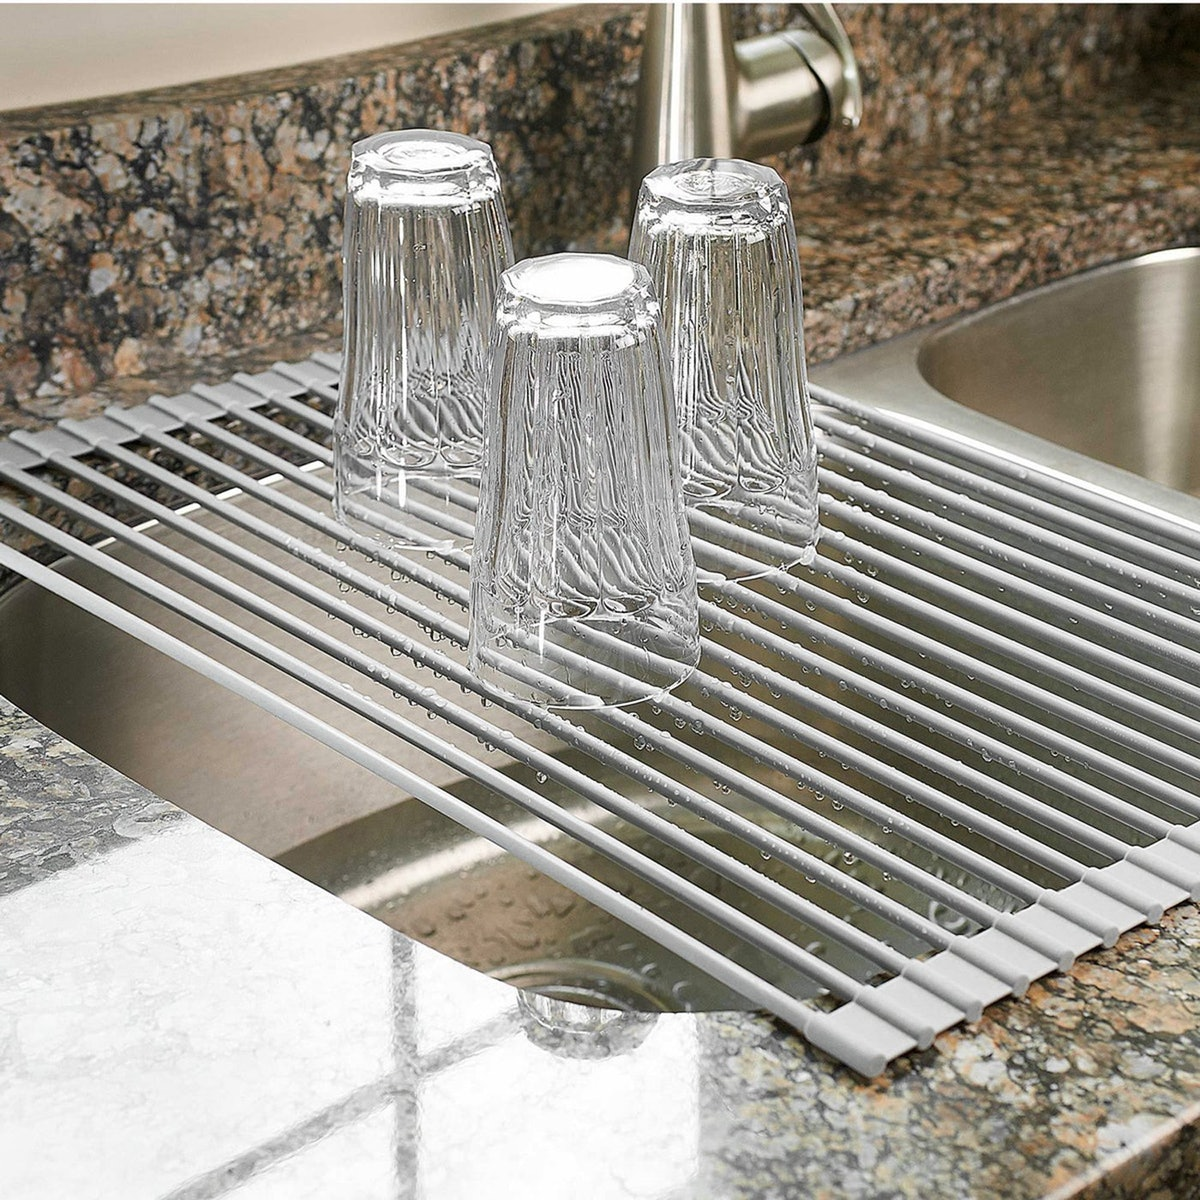 Surpahs Over-The-Sink Dish Drying Rack